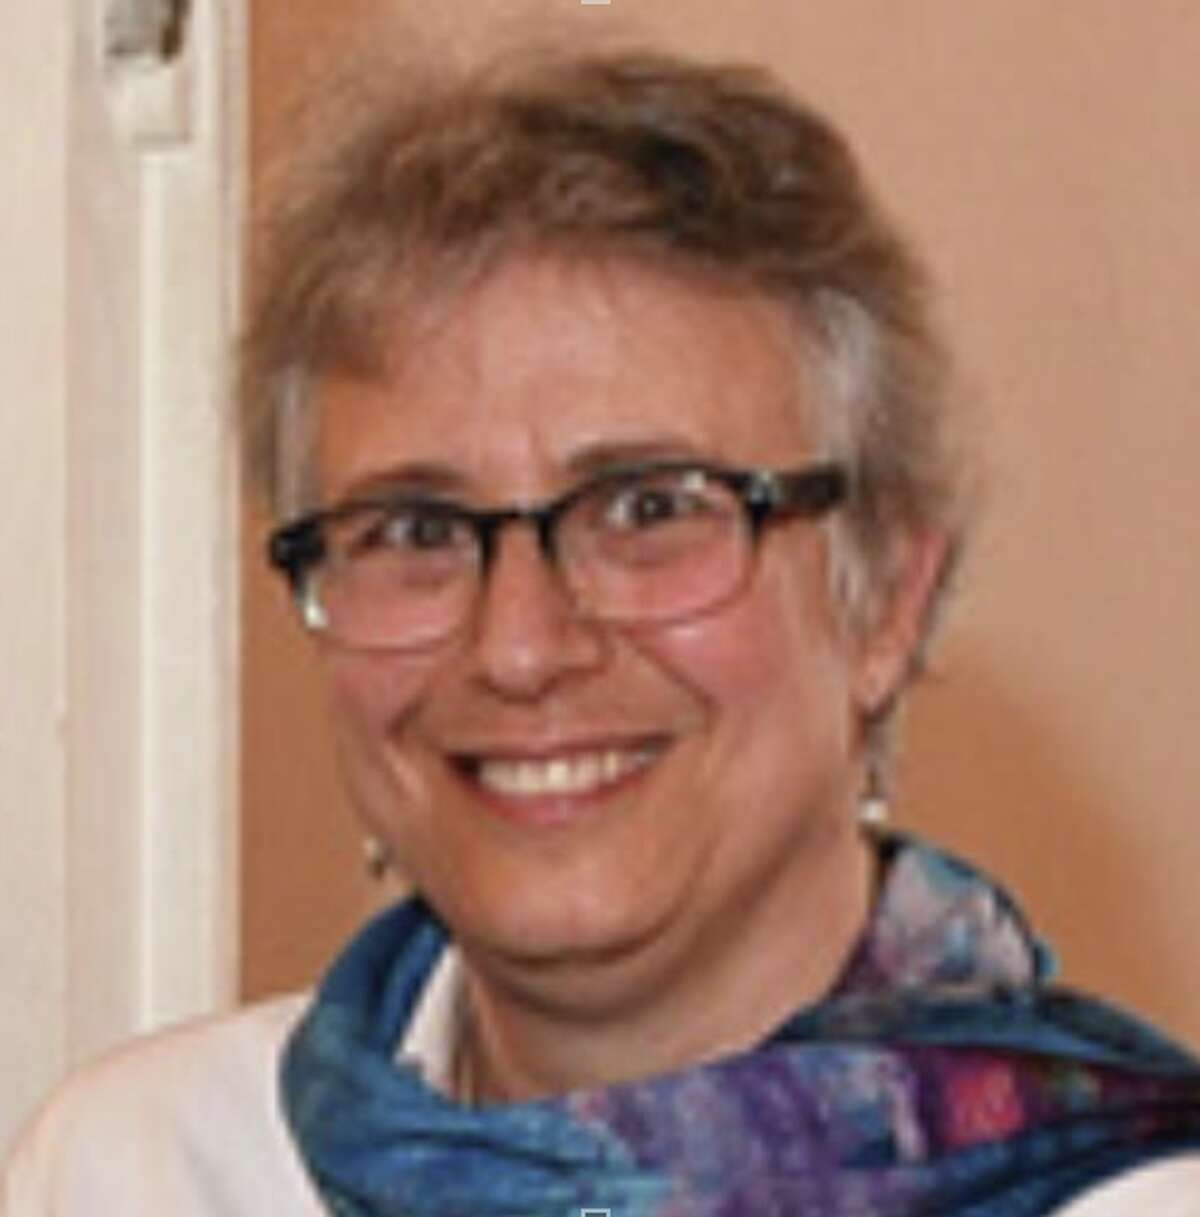 Rabbi Deb Gordon of Congregation Berinth Sholom in Troy NY leads a group of LGBTQA+and straight women studying ancient texts of Jewish wisdom.